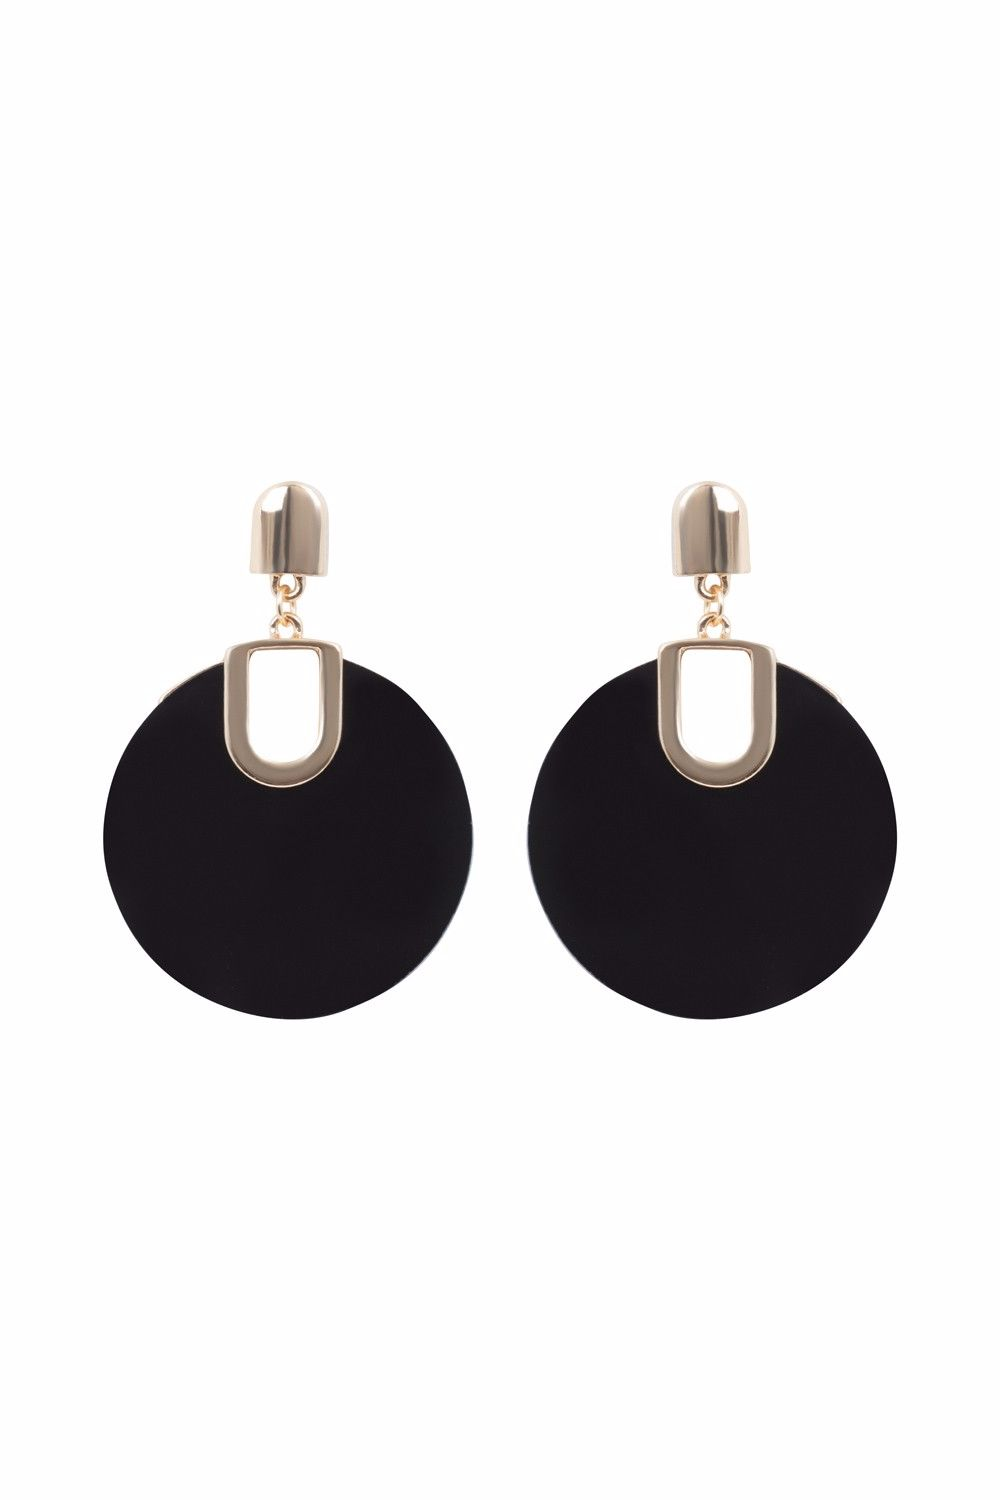 1960's Retro Disc Earrings